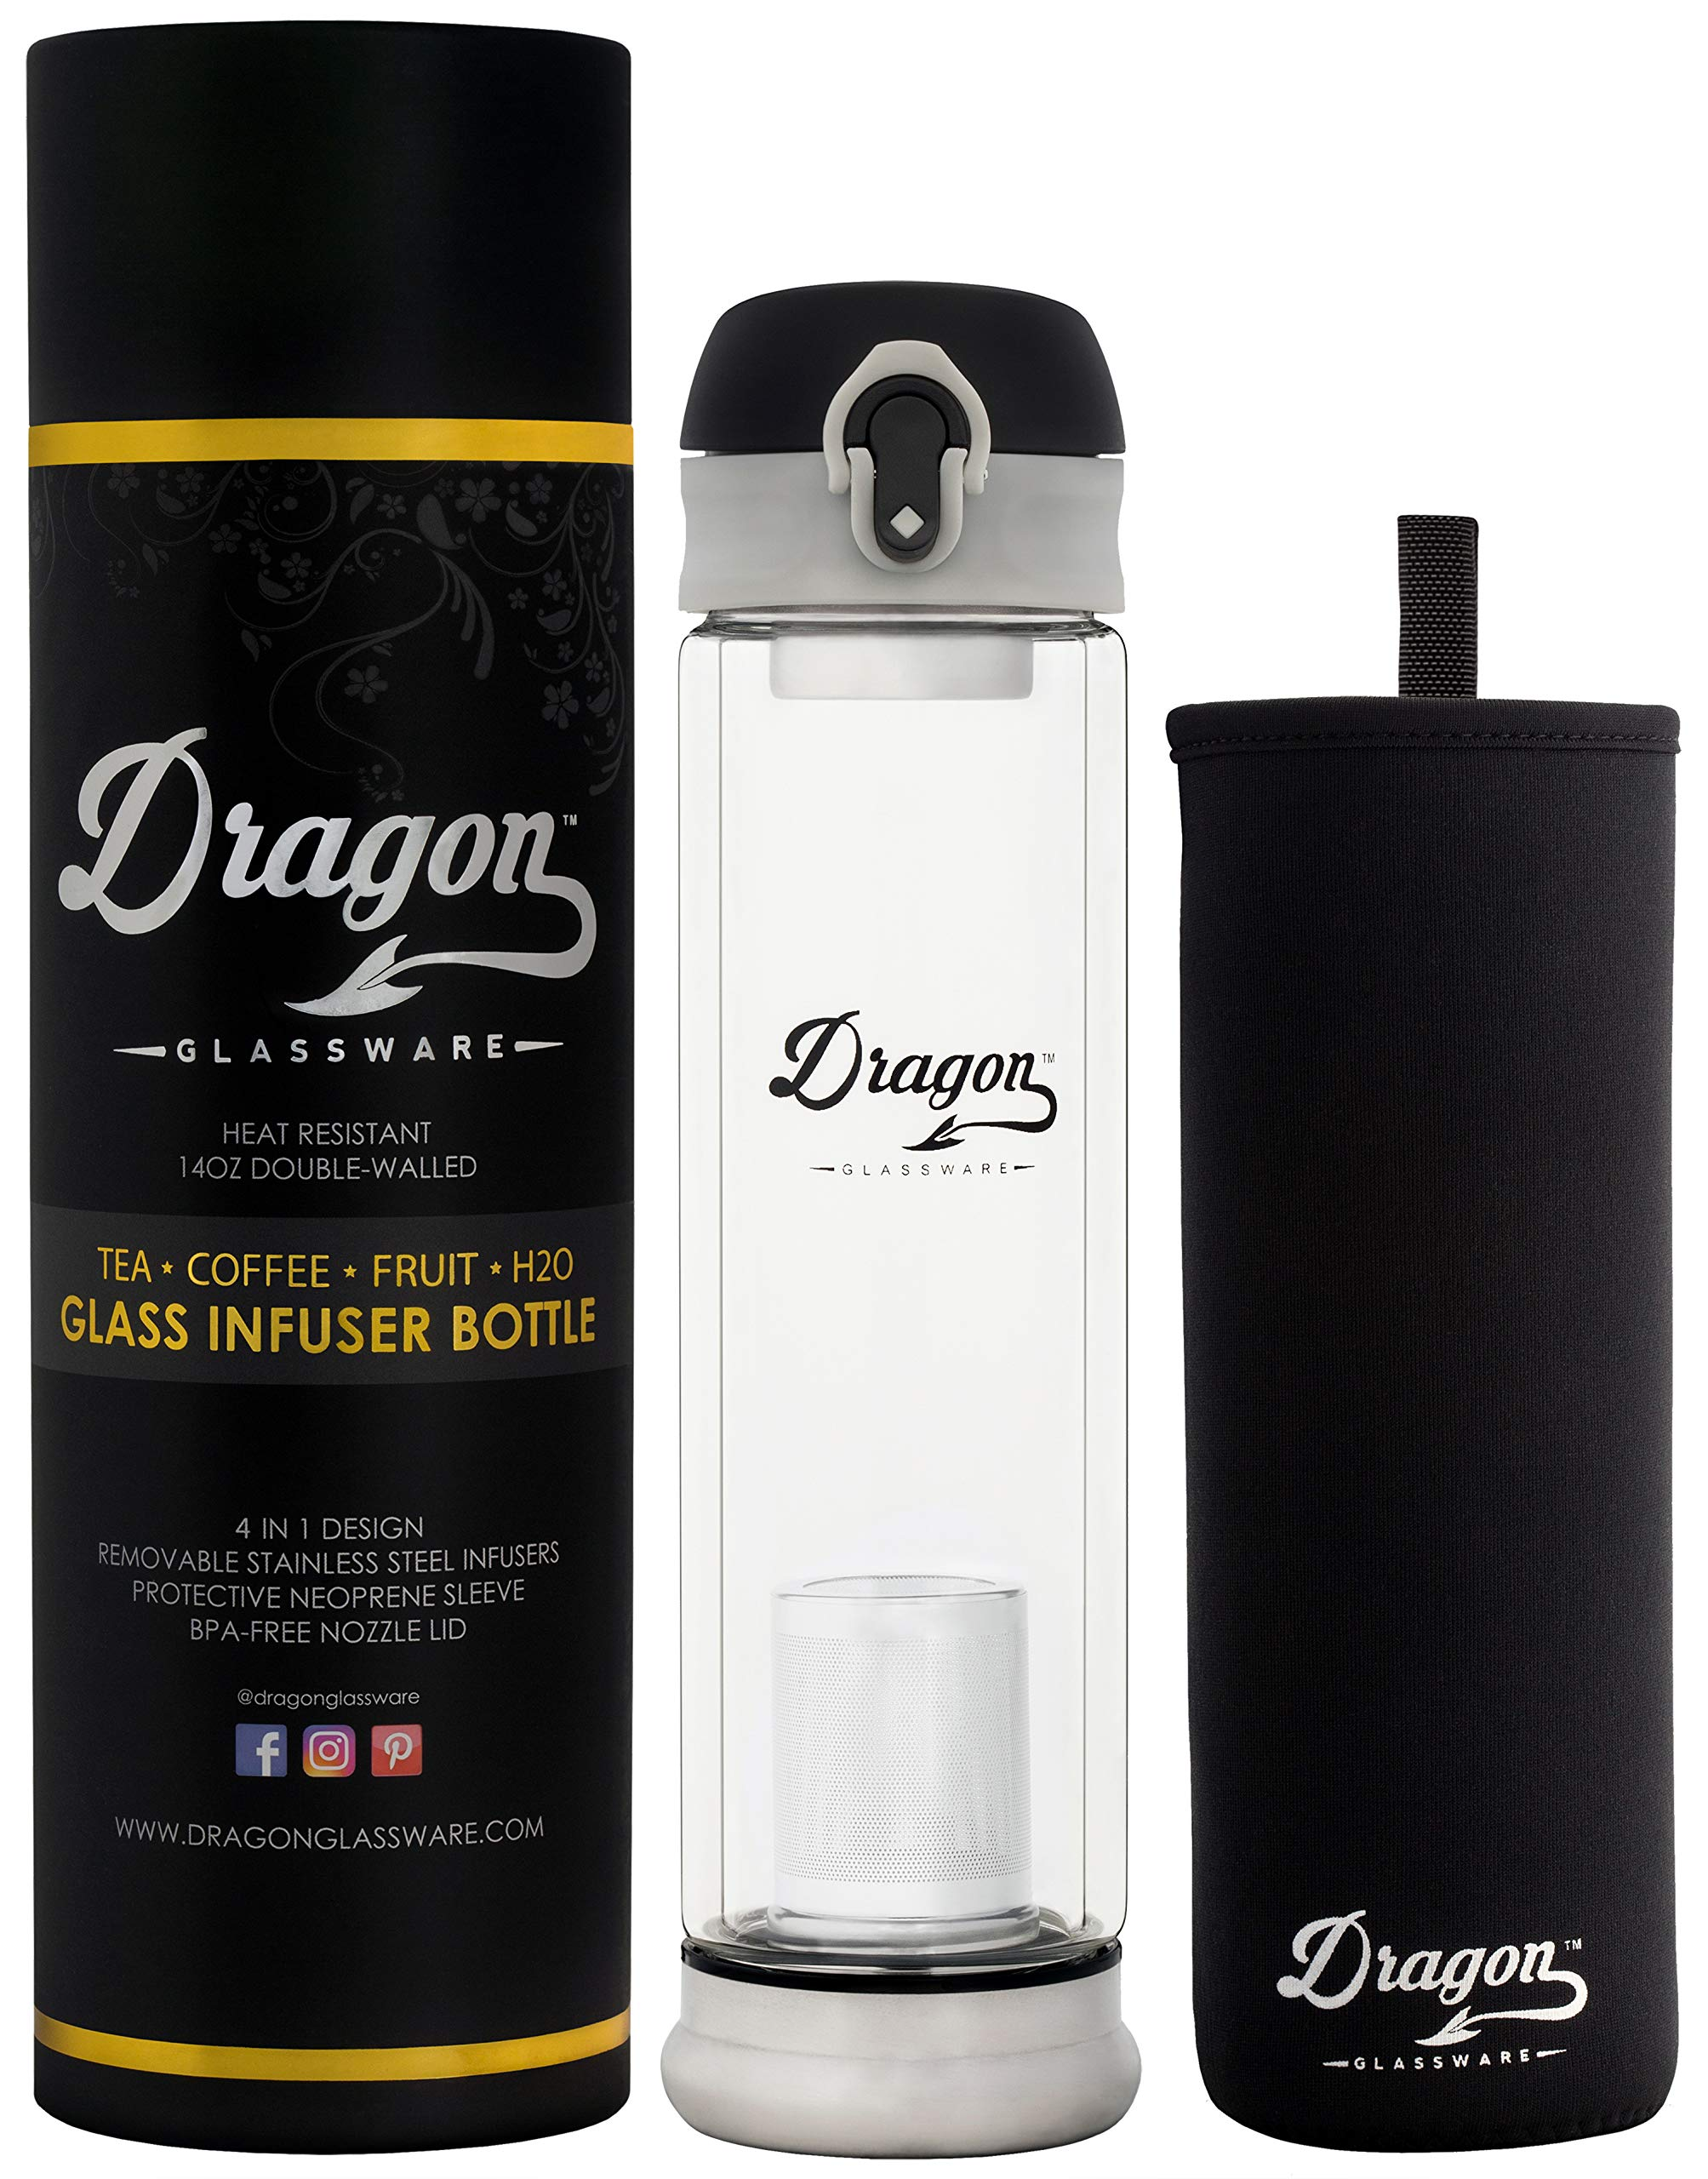 Dragon Glassware Tea Infuser Bottle, 14-Ounce Double Wall Glass, Flip-Top Lid, 2 Stainless Steel Strainers, Travel Sleeve, Tea Maker for Loose Leaf Tea